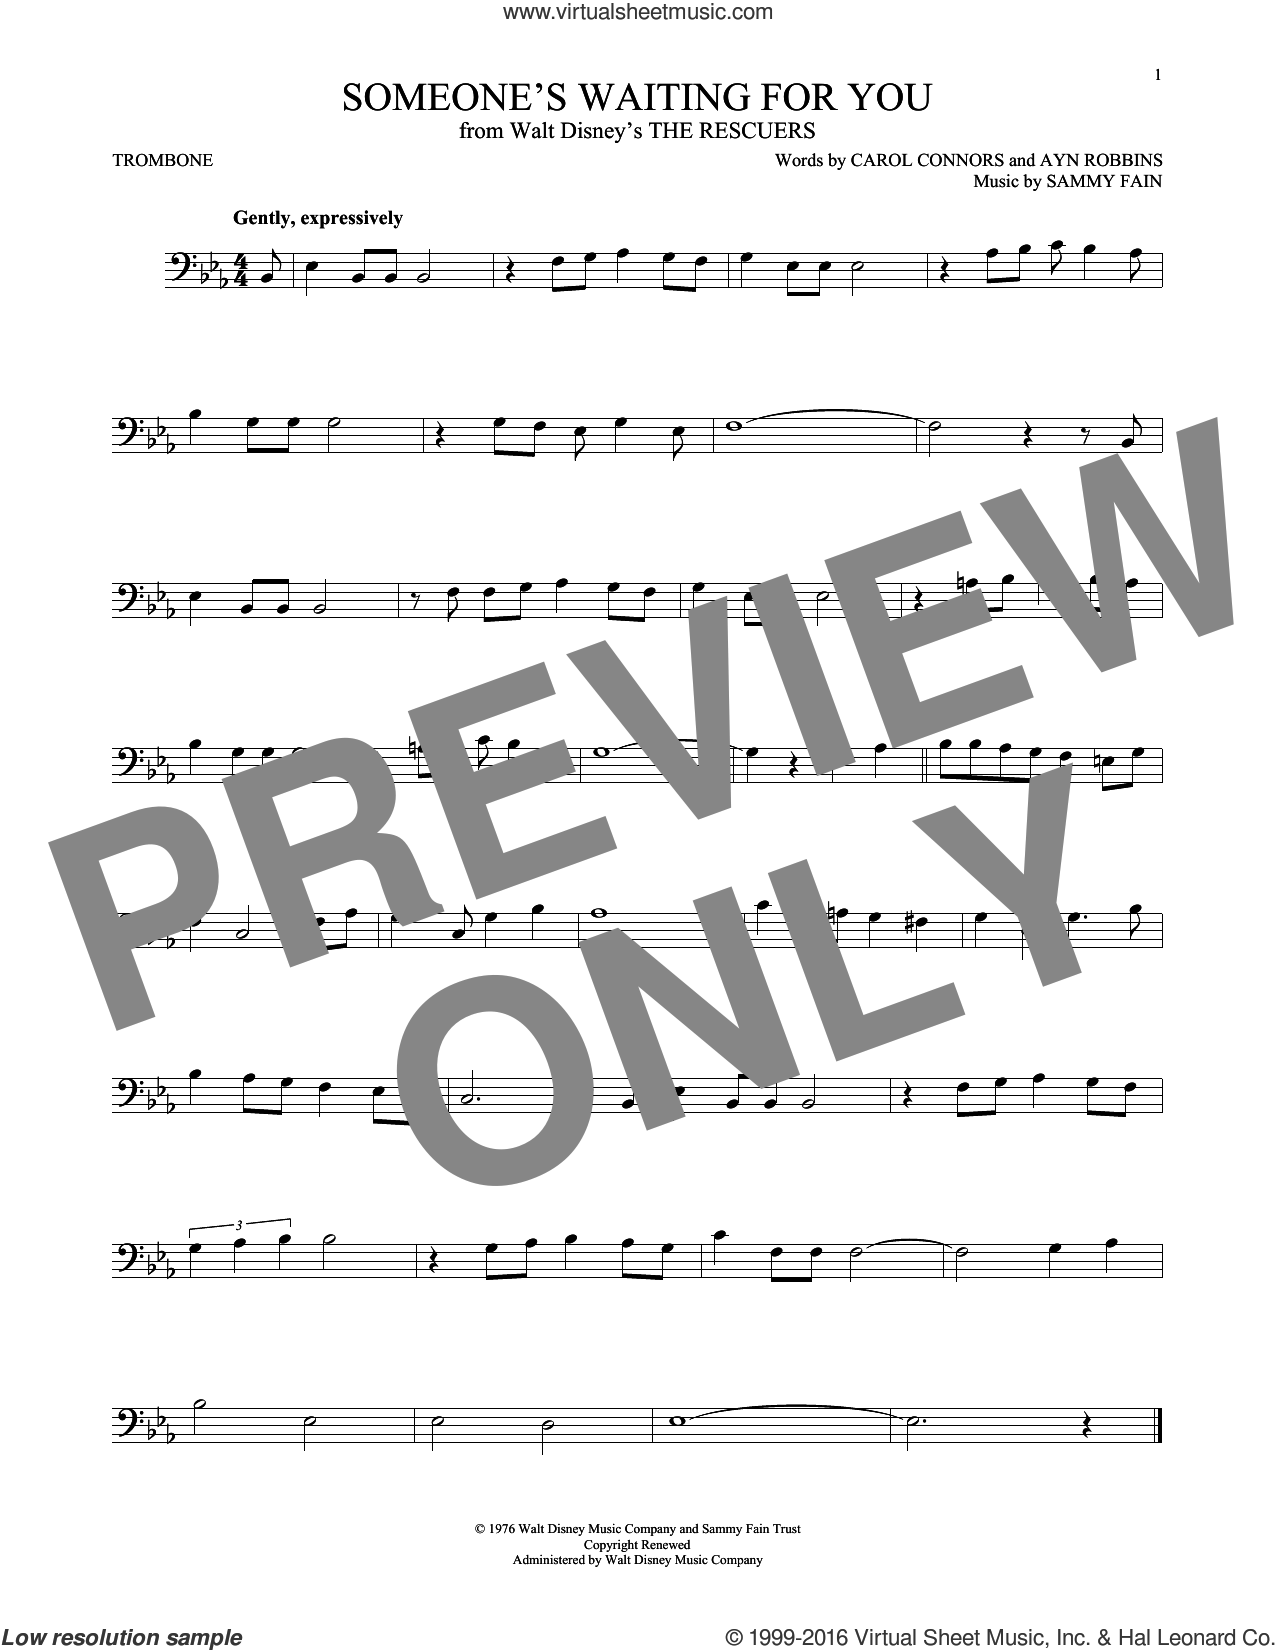 Someone's Waiting For You sheet music for trombone solo by Sammy Fain, Ayn Robbins and Carol Connors, intermediate skill level